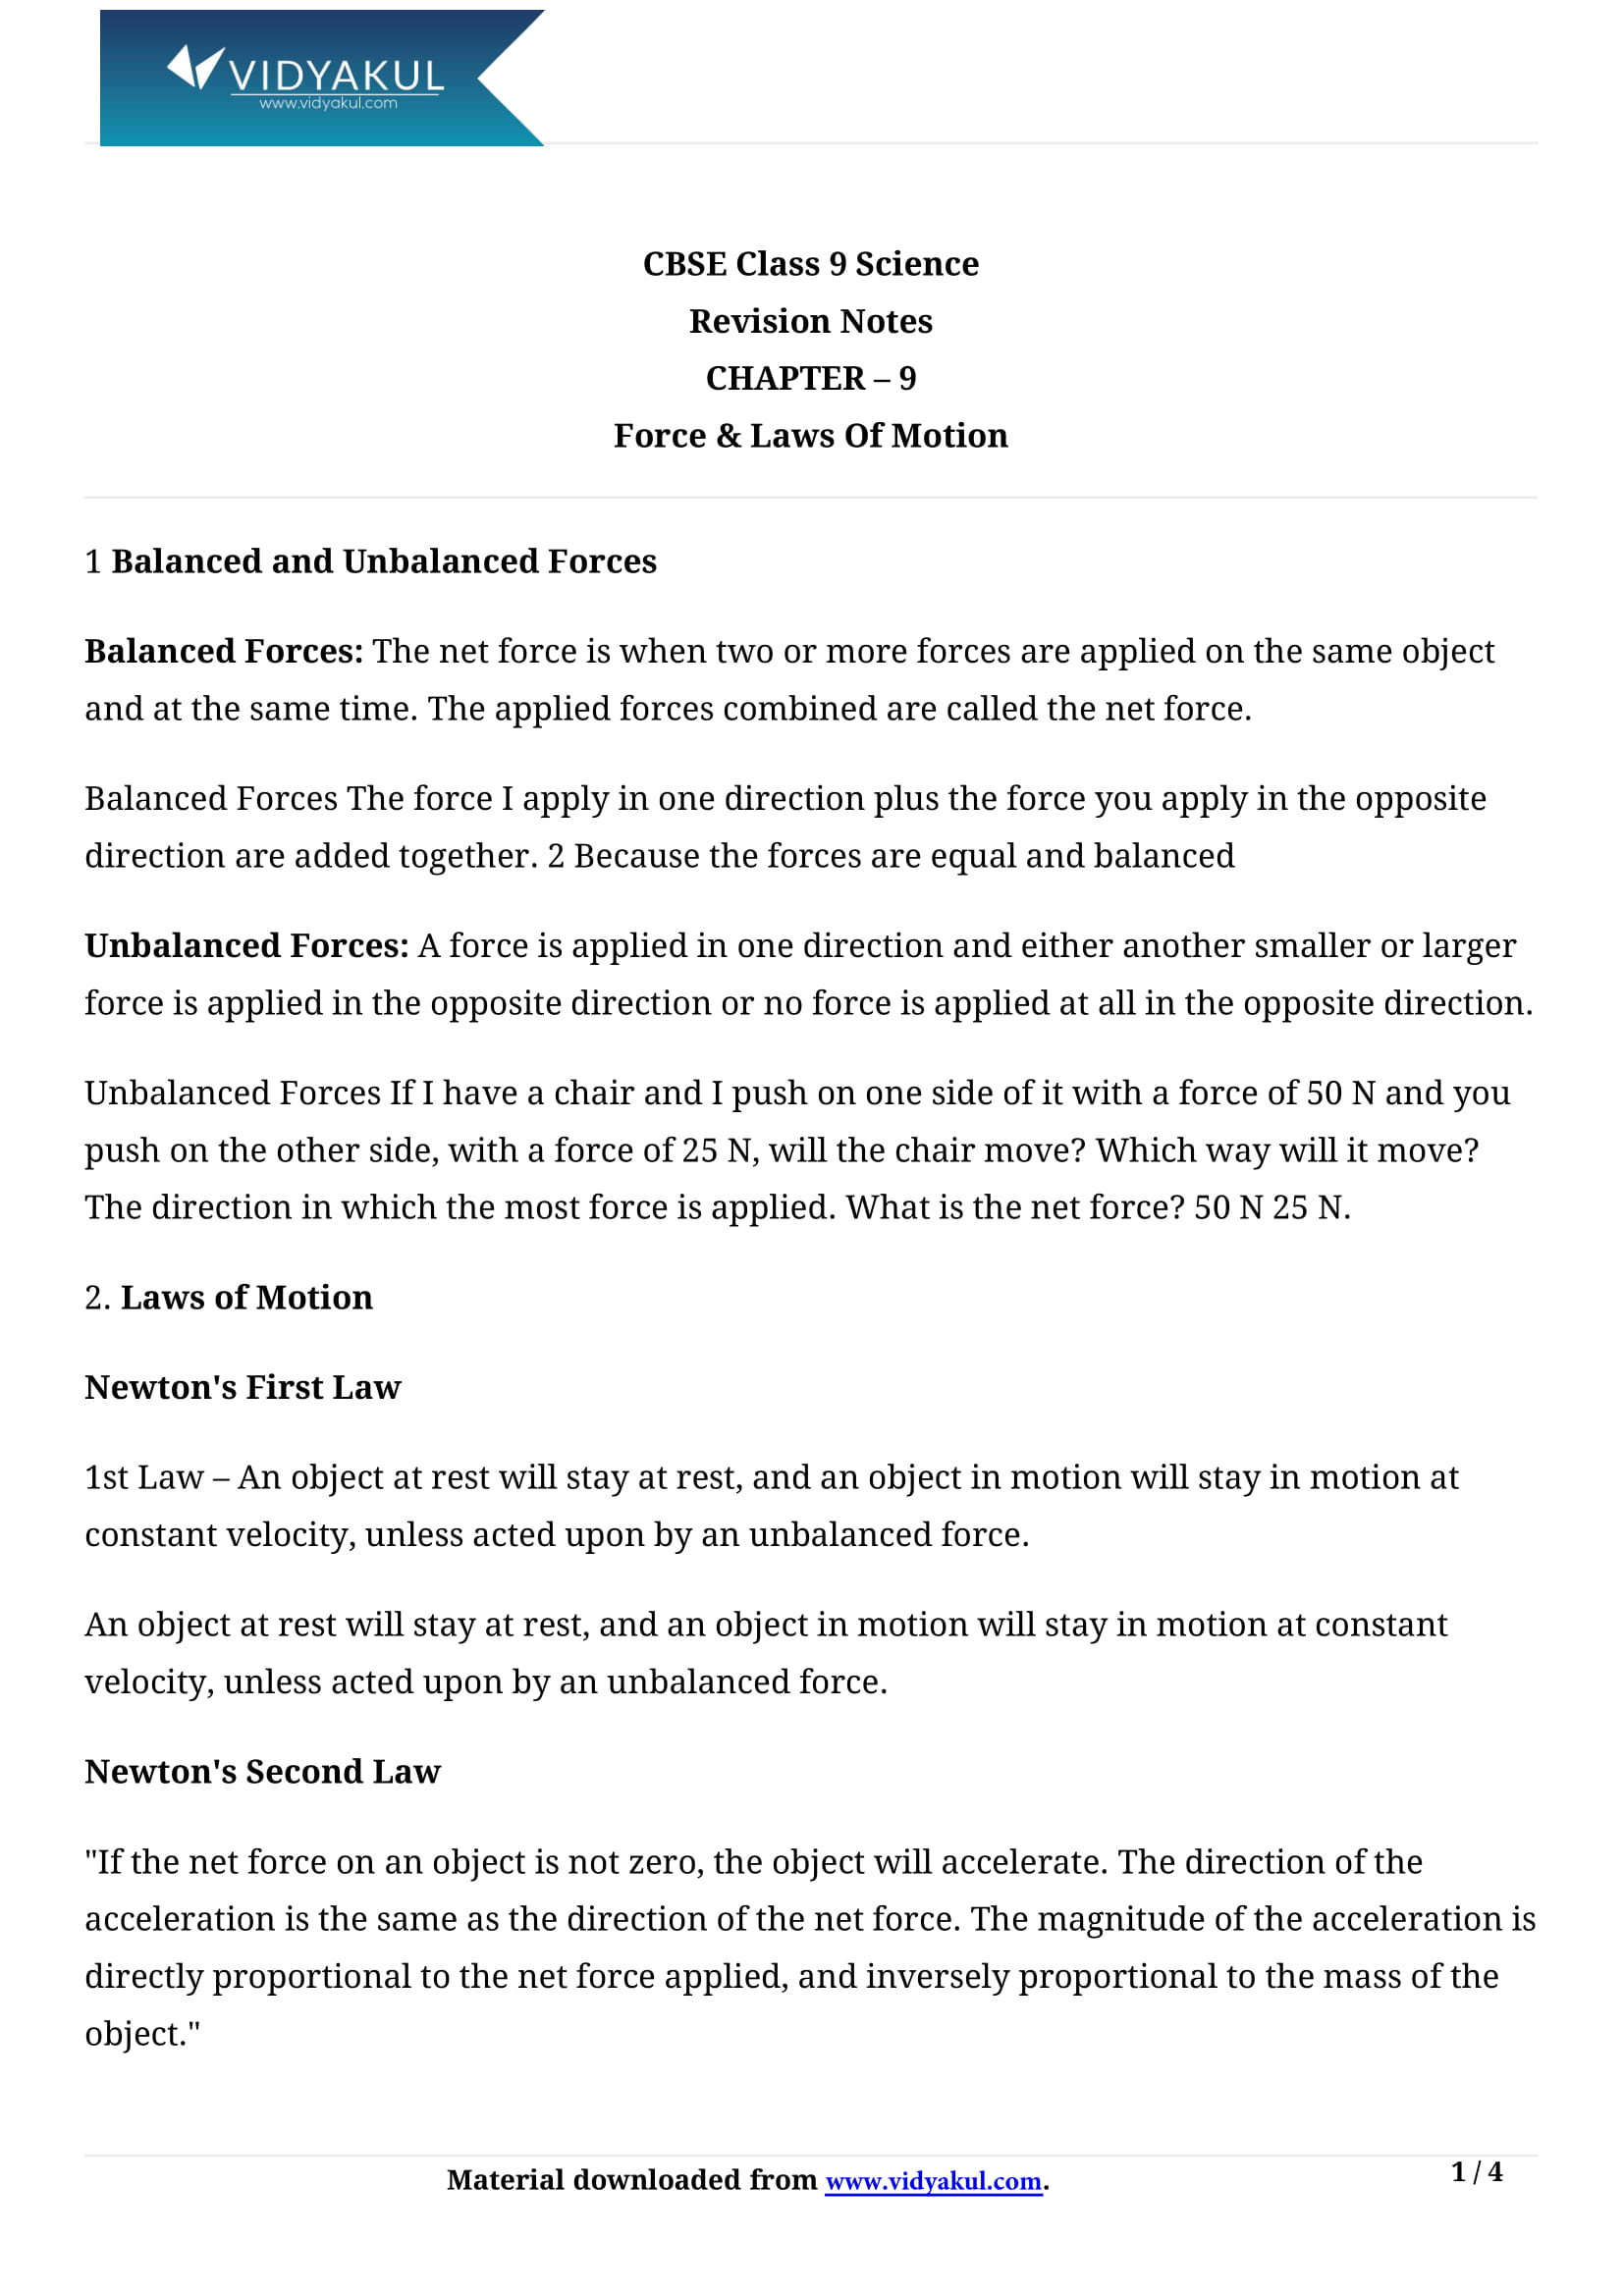 Force And Laws Of Motion Class 9 Pdf